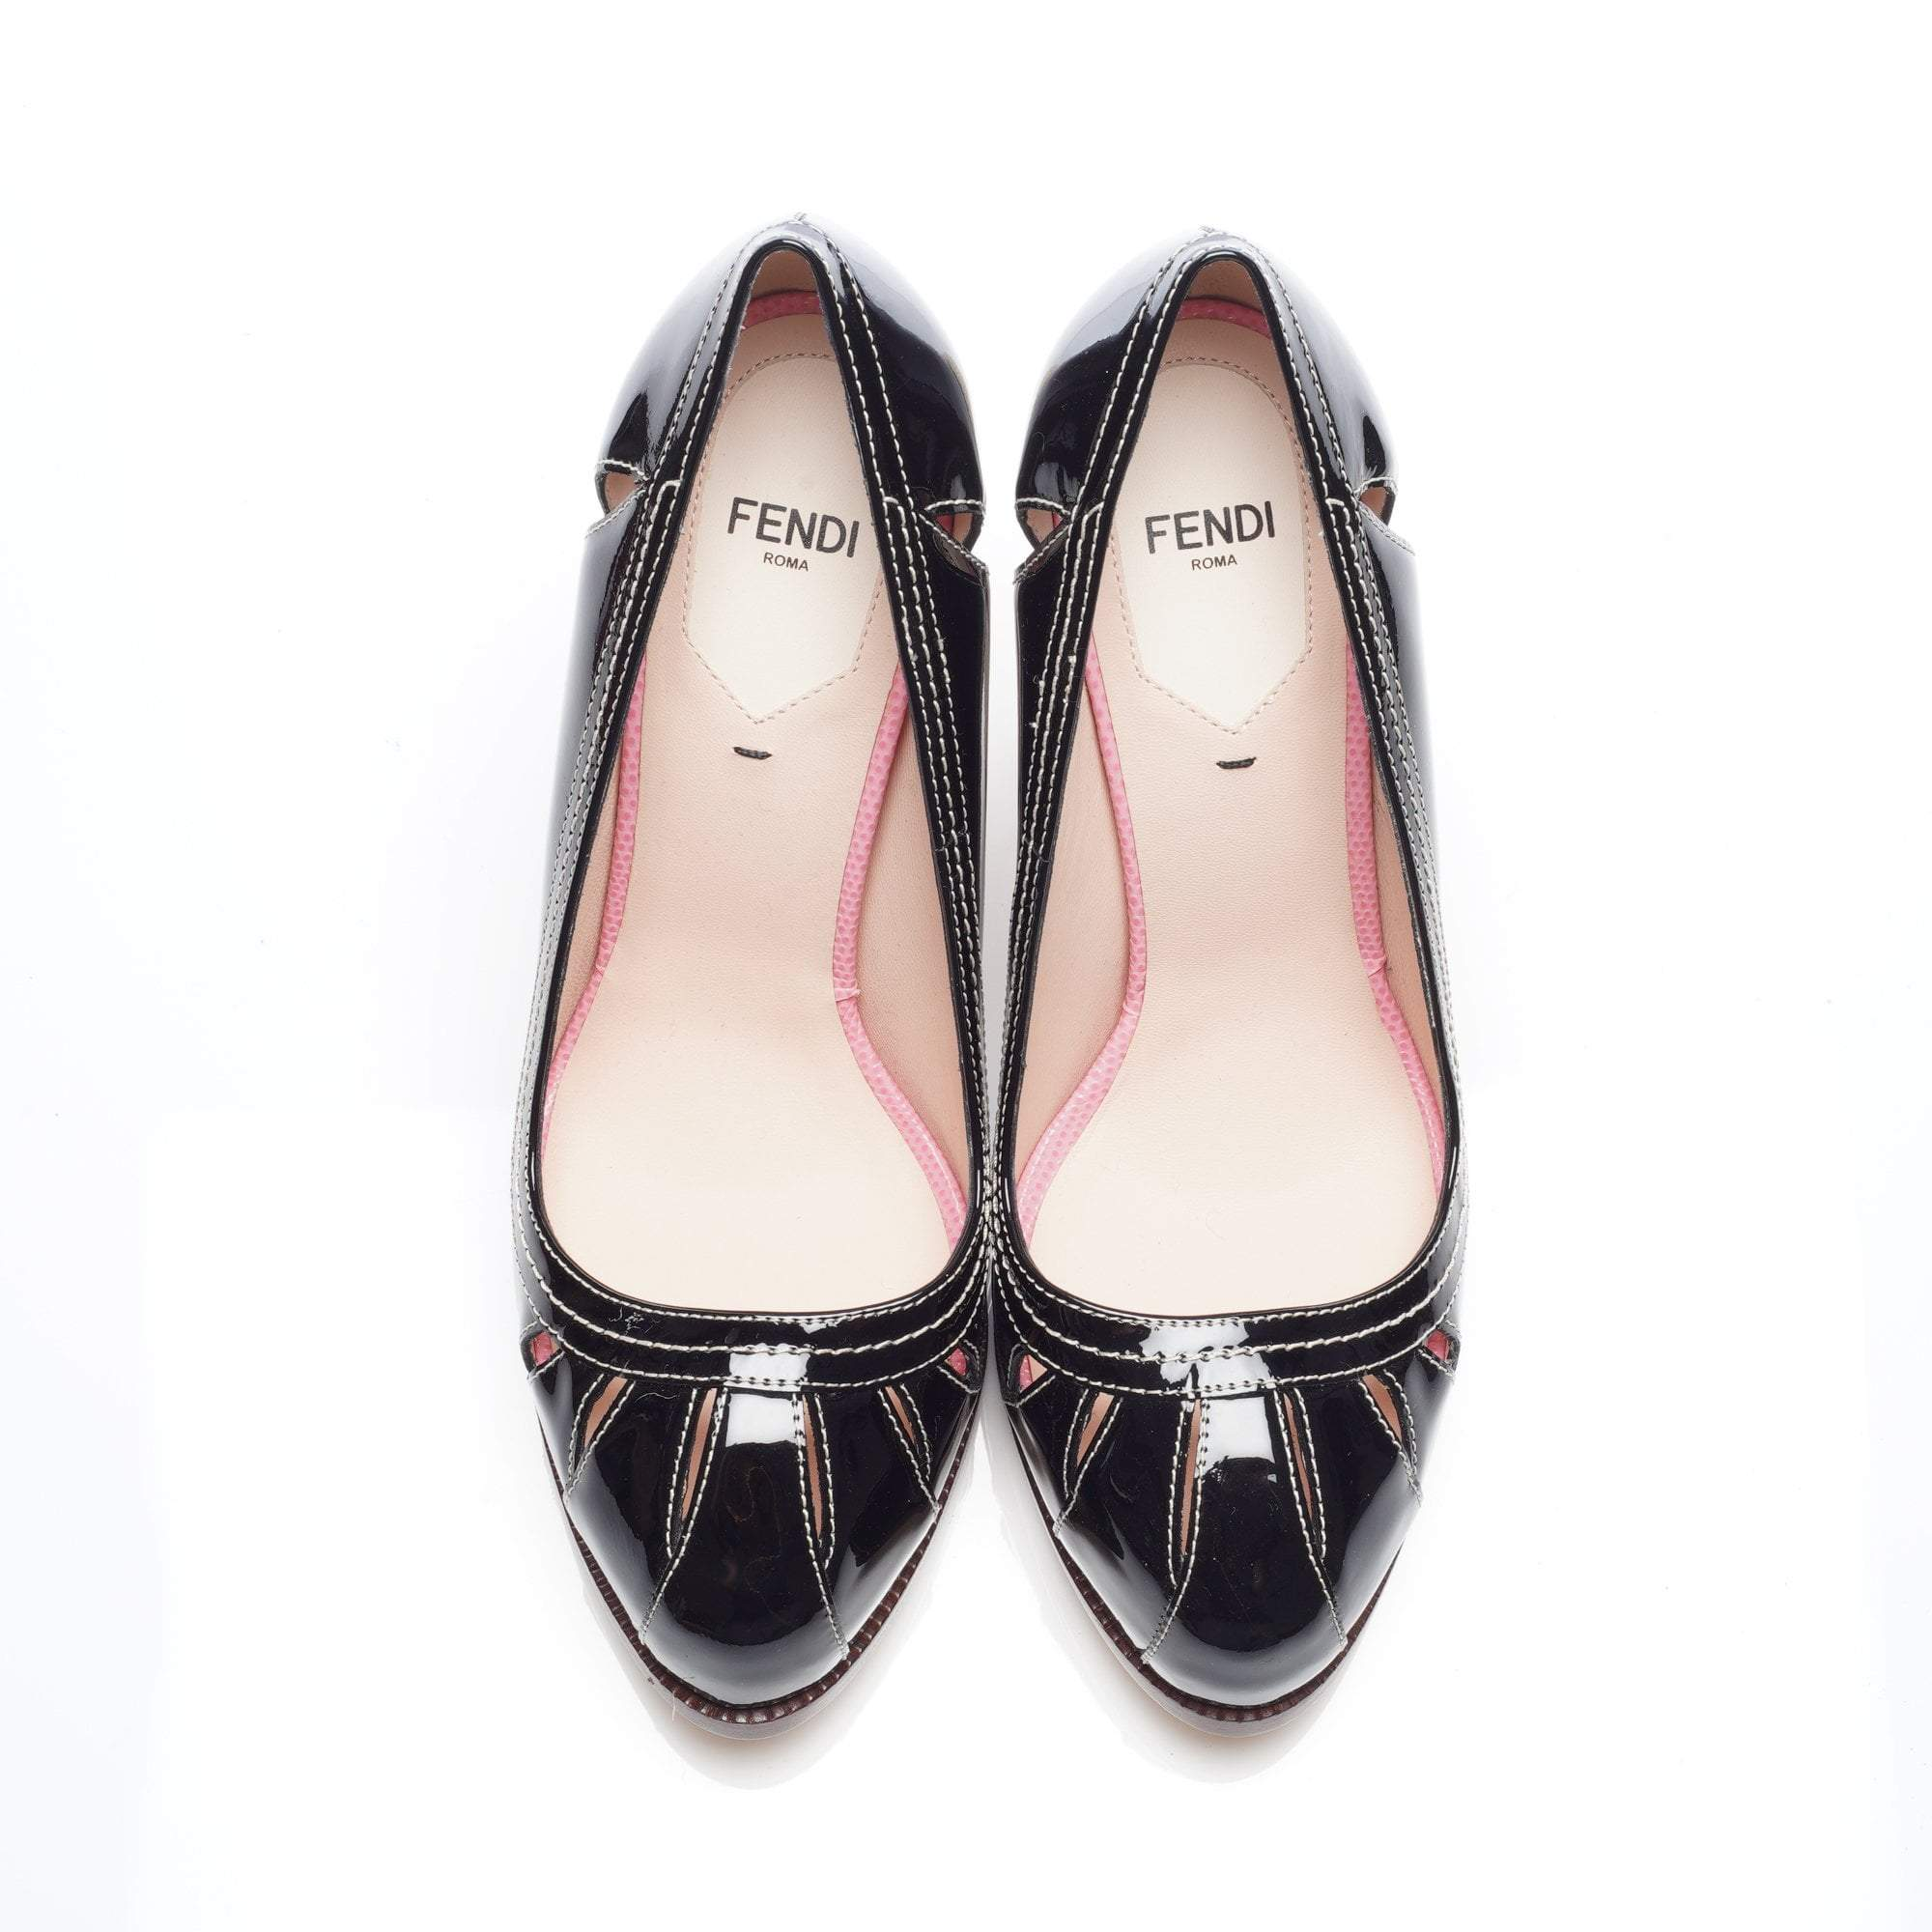 Fendi Black Patent Leather Cut Out Platform Pumps